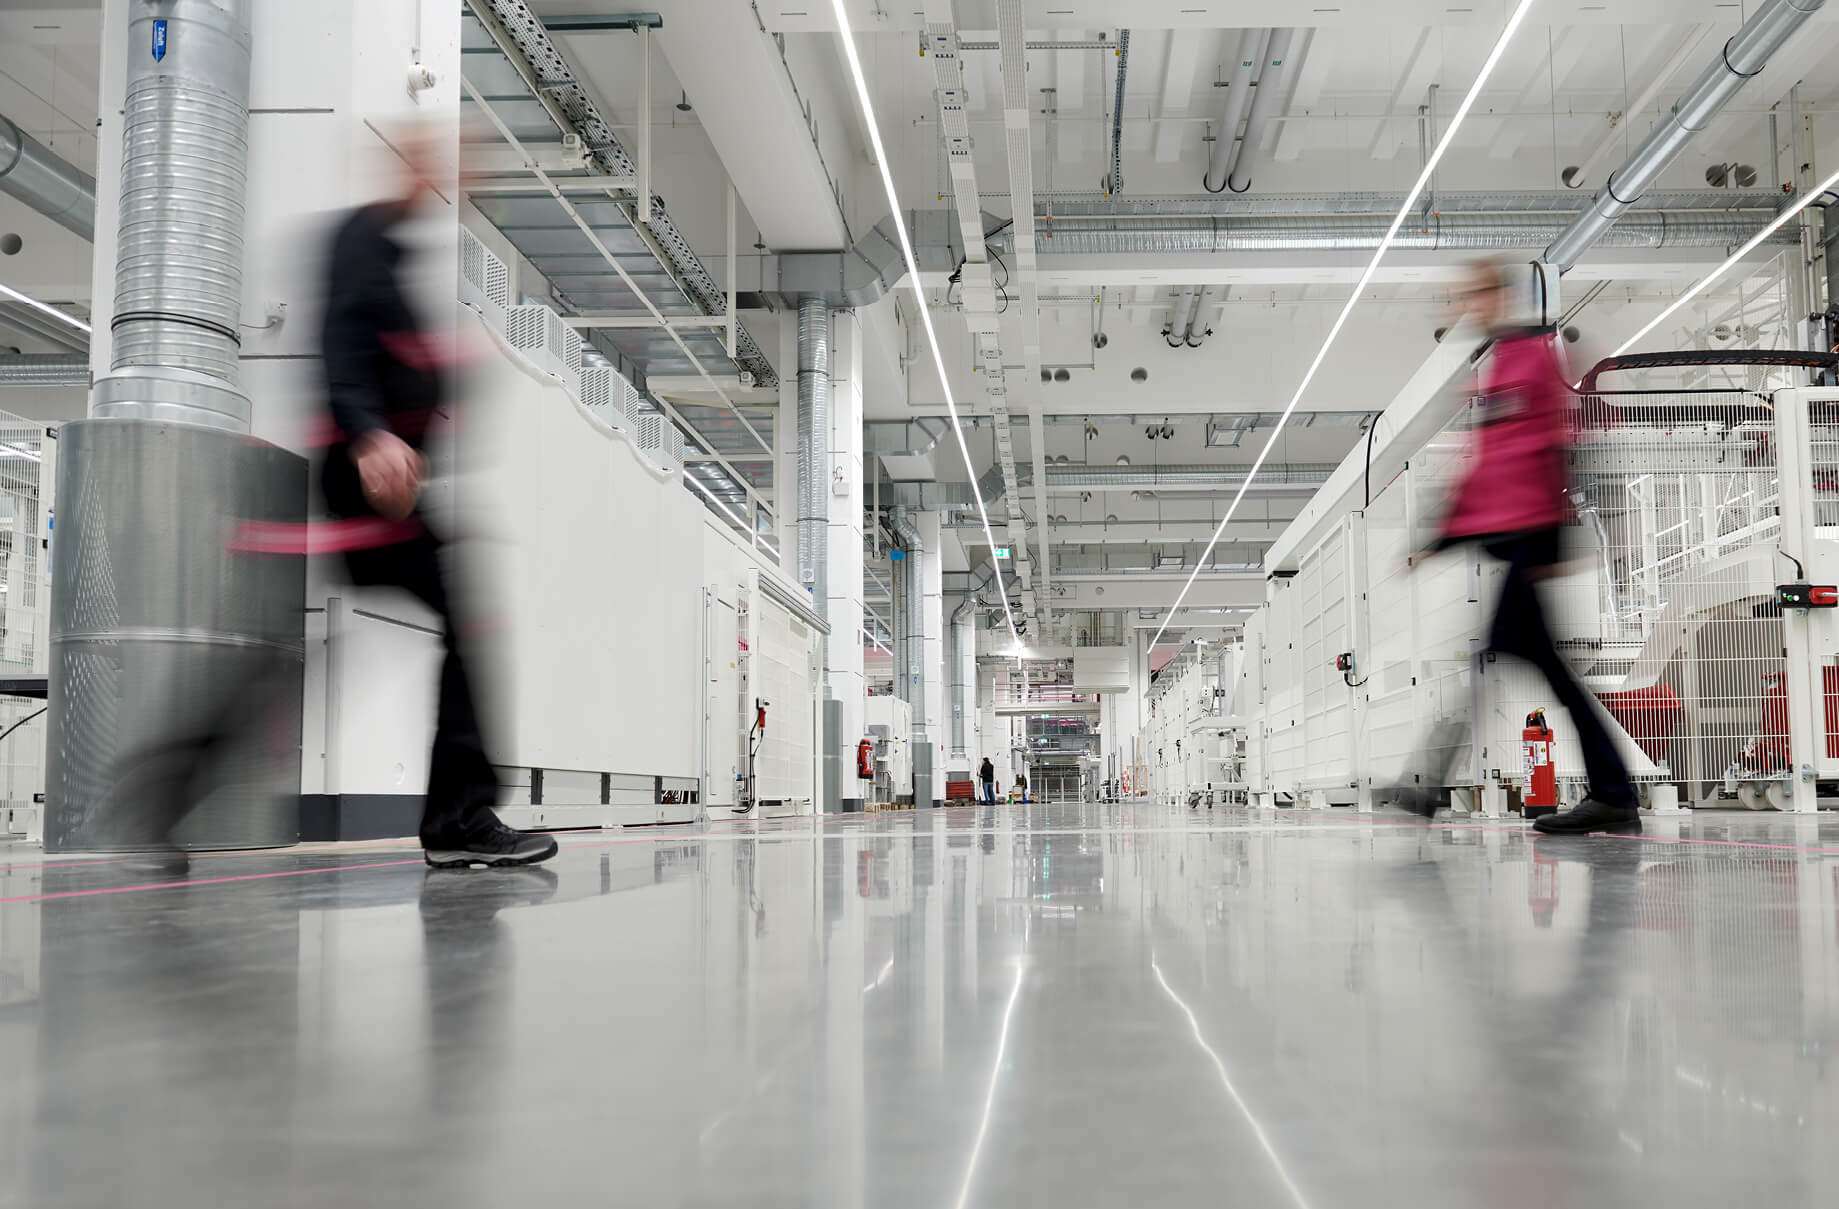 Both staff and automated guided vehicles (AGVs) use the broad aisles of the plant to move between the various production hubs. There is still a separate area for pedestrians, too. The plant stretches over two floors, with approximately 24,000 square metres of production space plus a staff area of around 1,000 square metres.